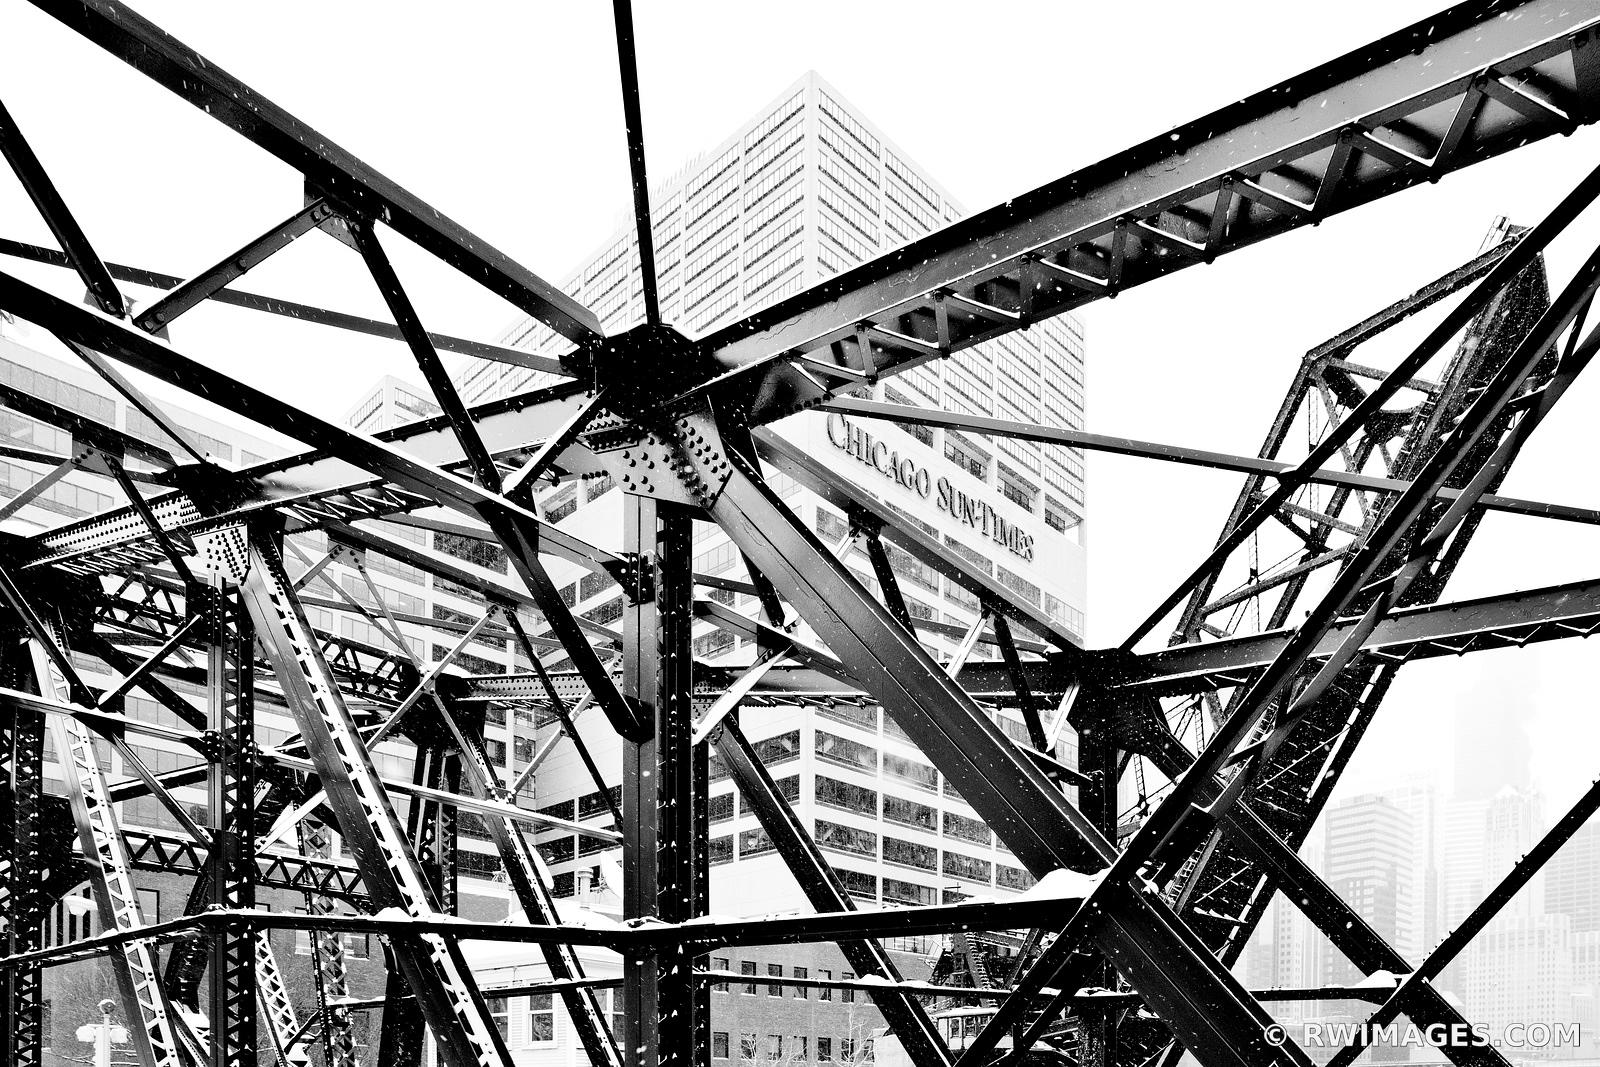 CHICAGO SUNTIMES BUILDING KINZIE BRIDGE WINTER DAY HEAVY SNOWFALL CHICAGO BLACK AND WHITE